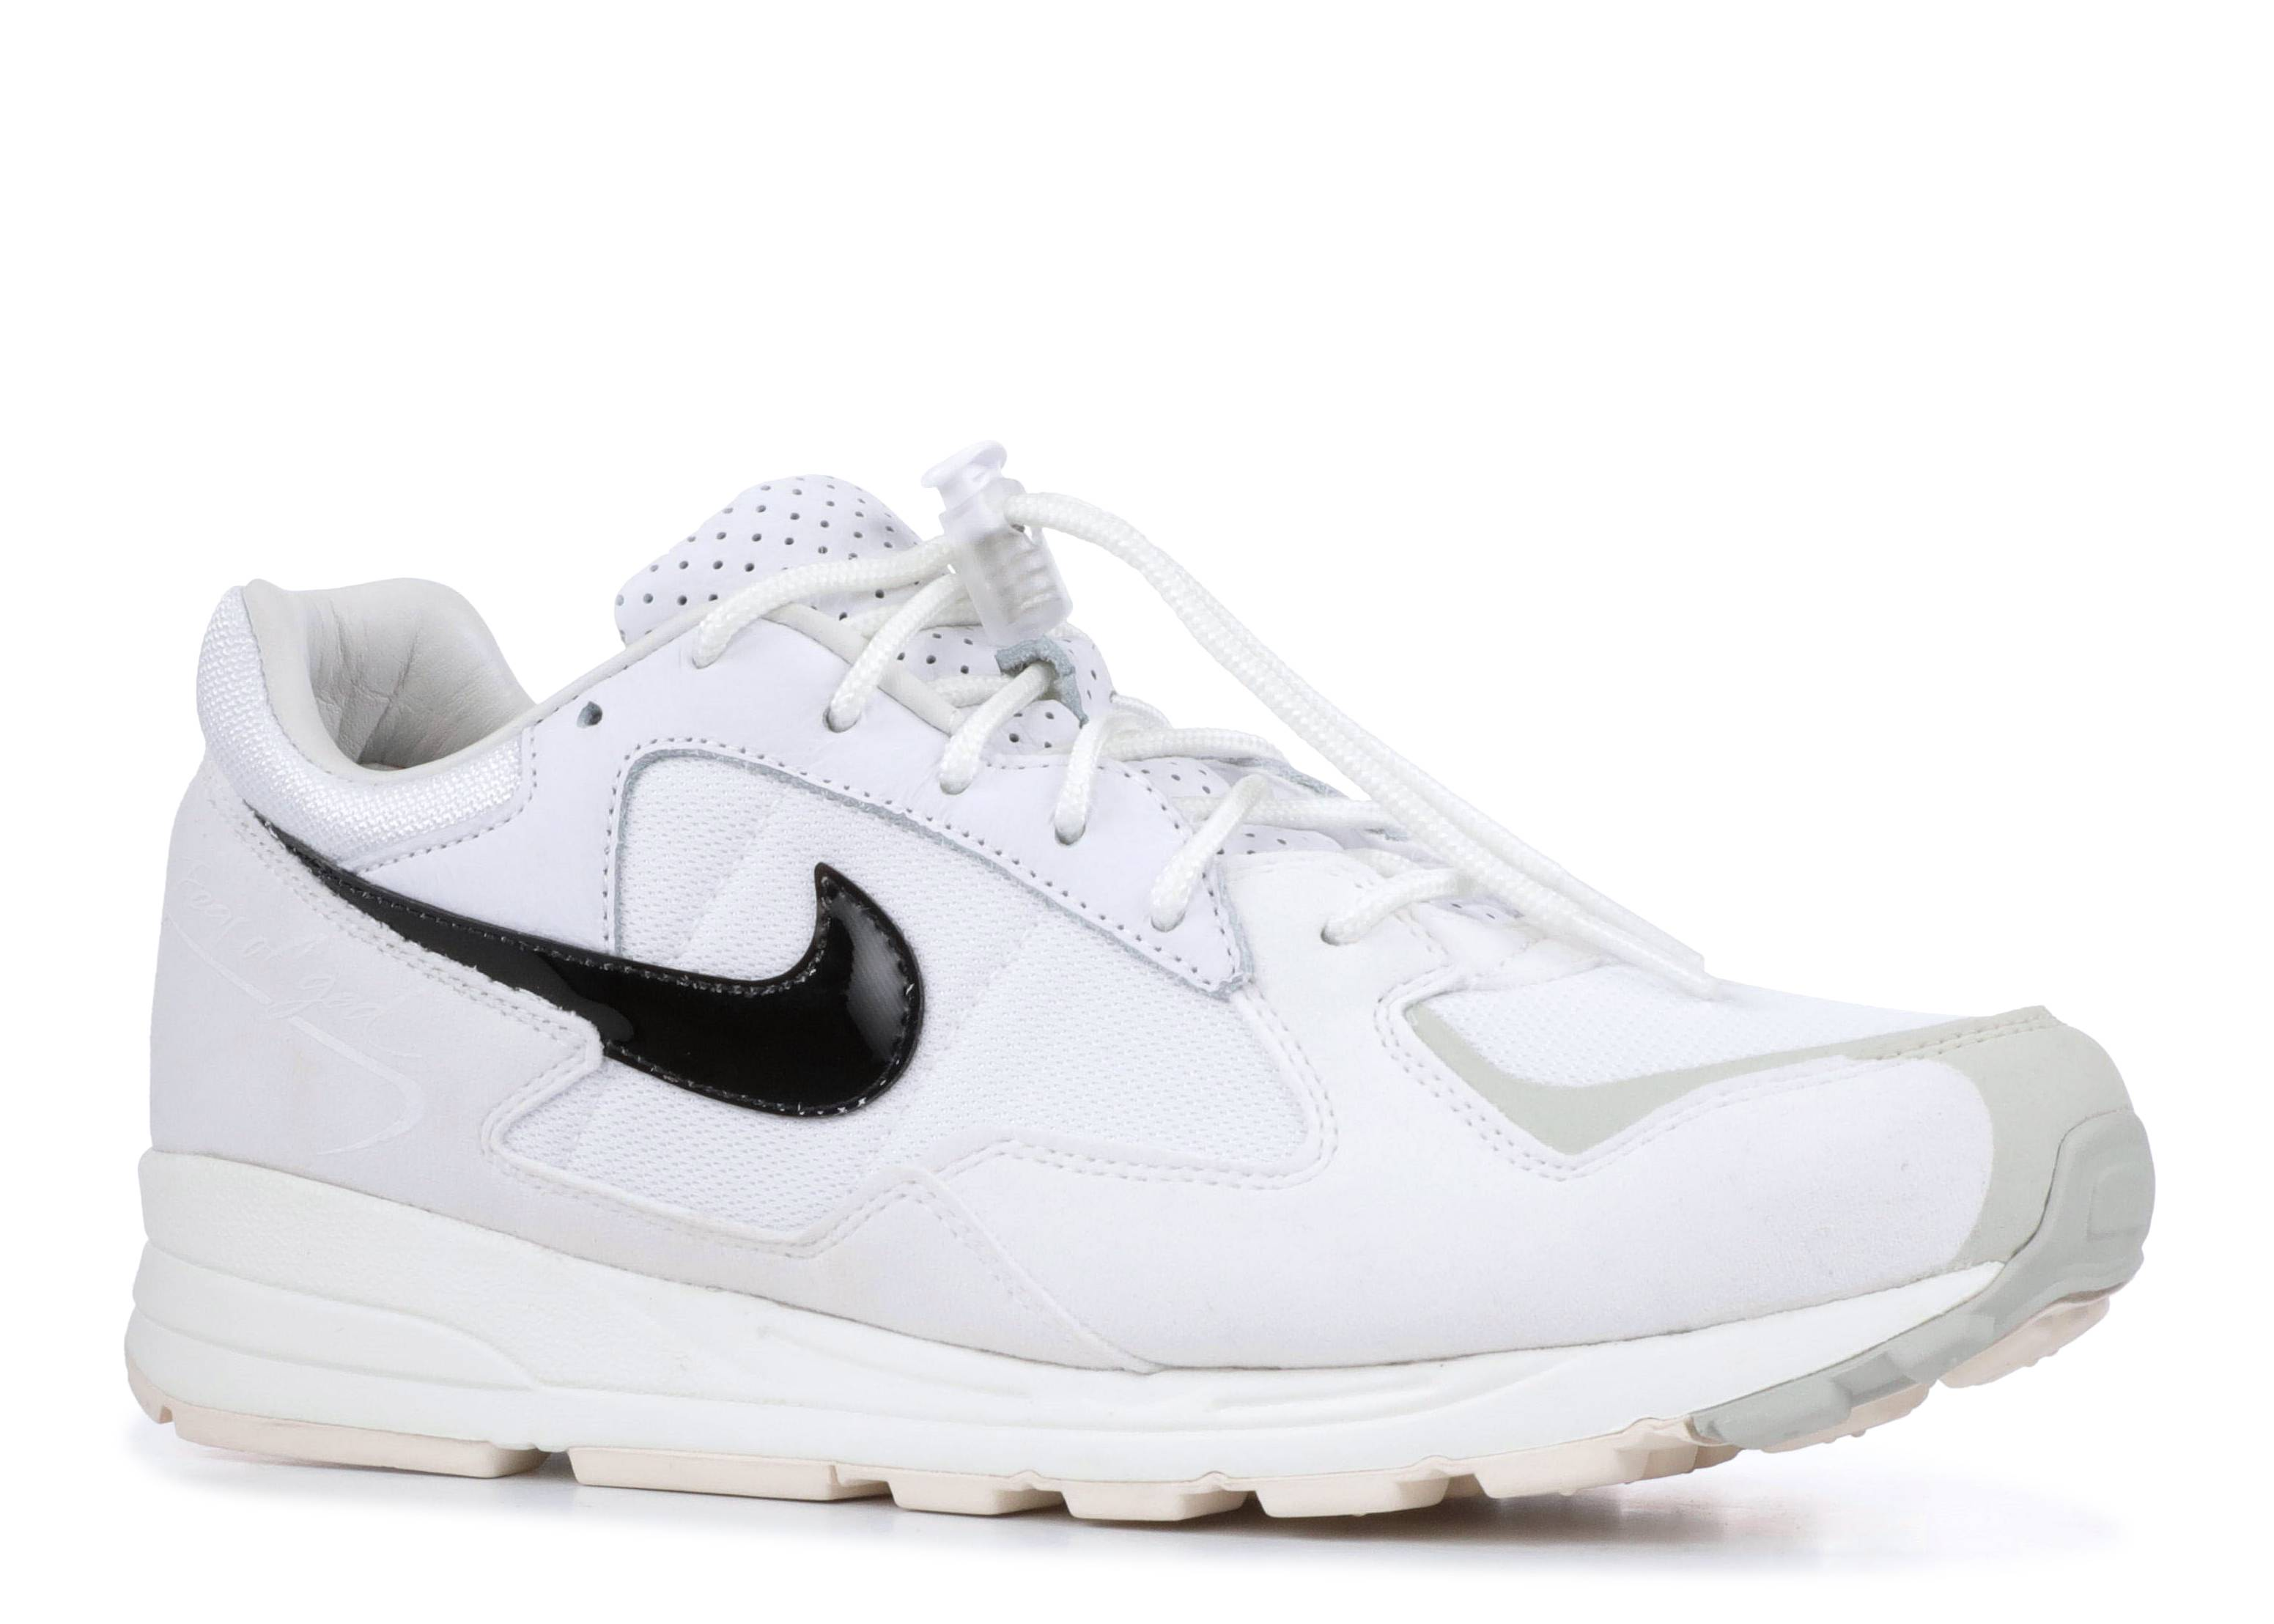 Nike Air Skylon II fog - Nike - bq2752 100 - white black-light bone sail  2436cb8a6